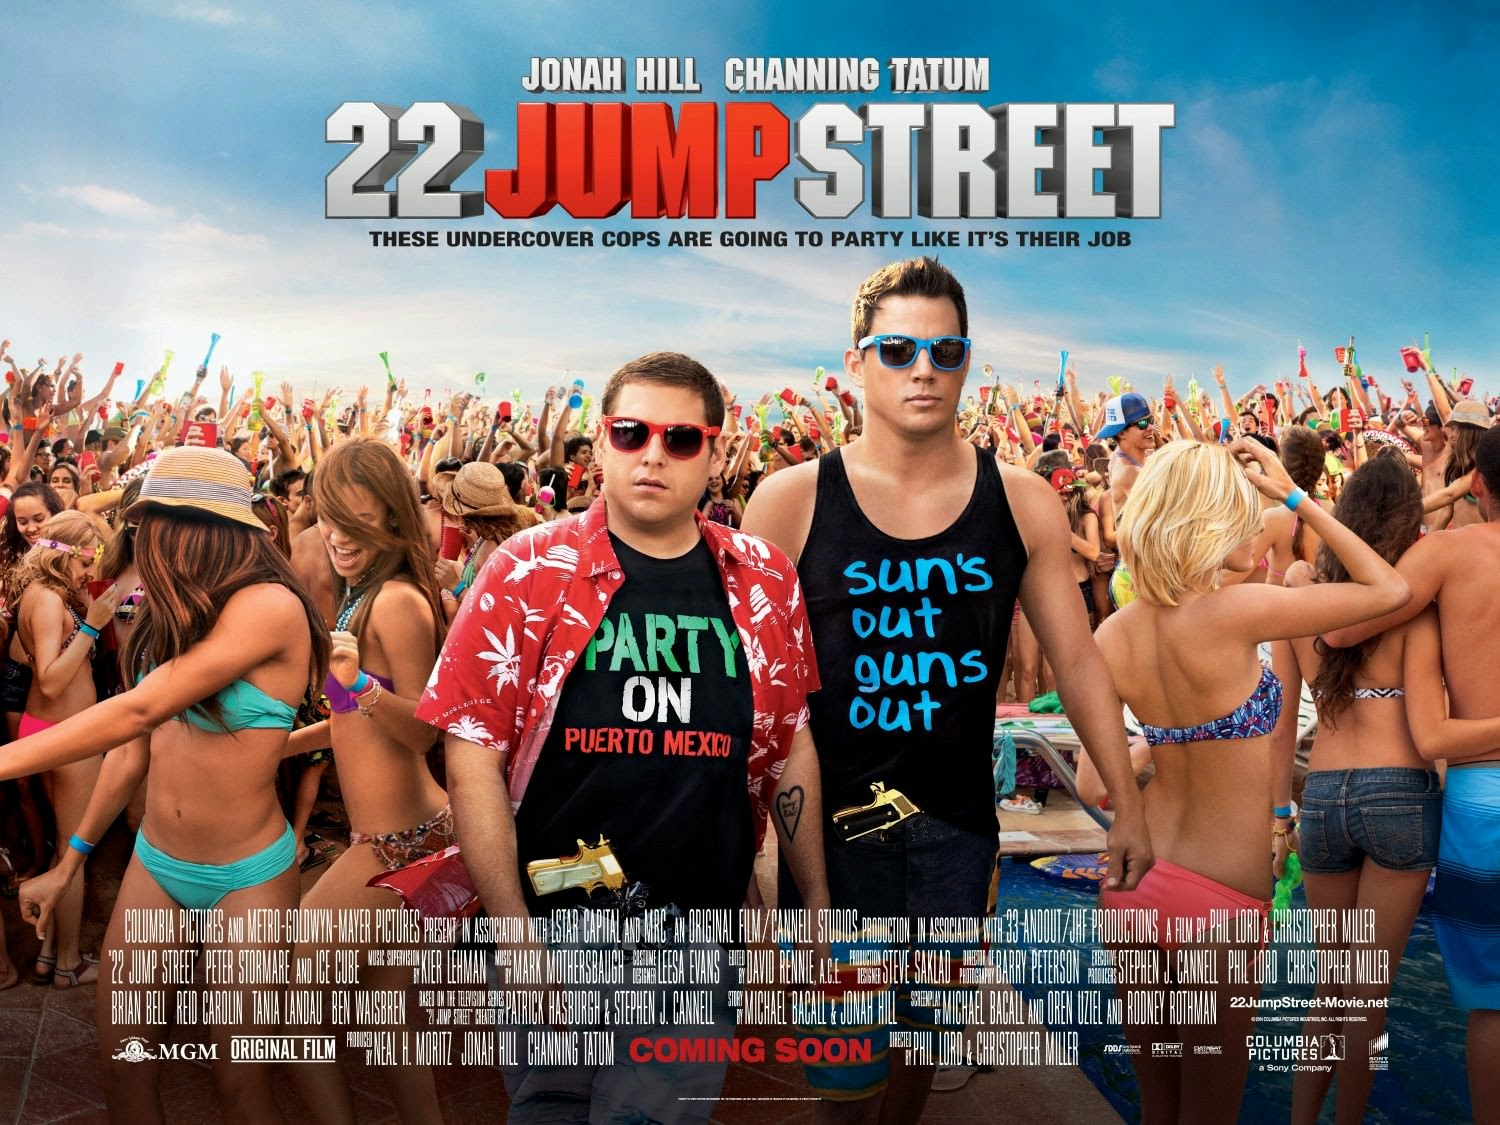 22 Jump Street Channing Tatum and Jonah Hill